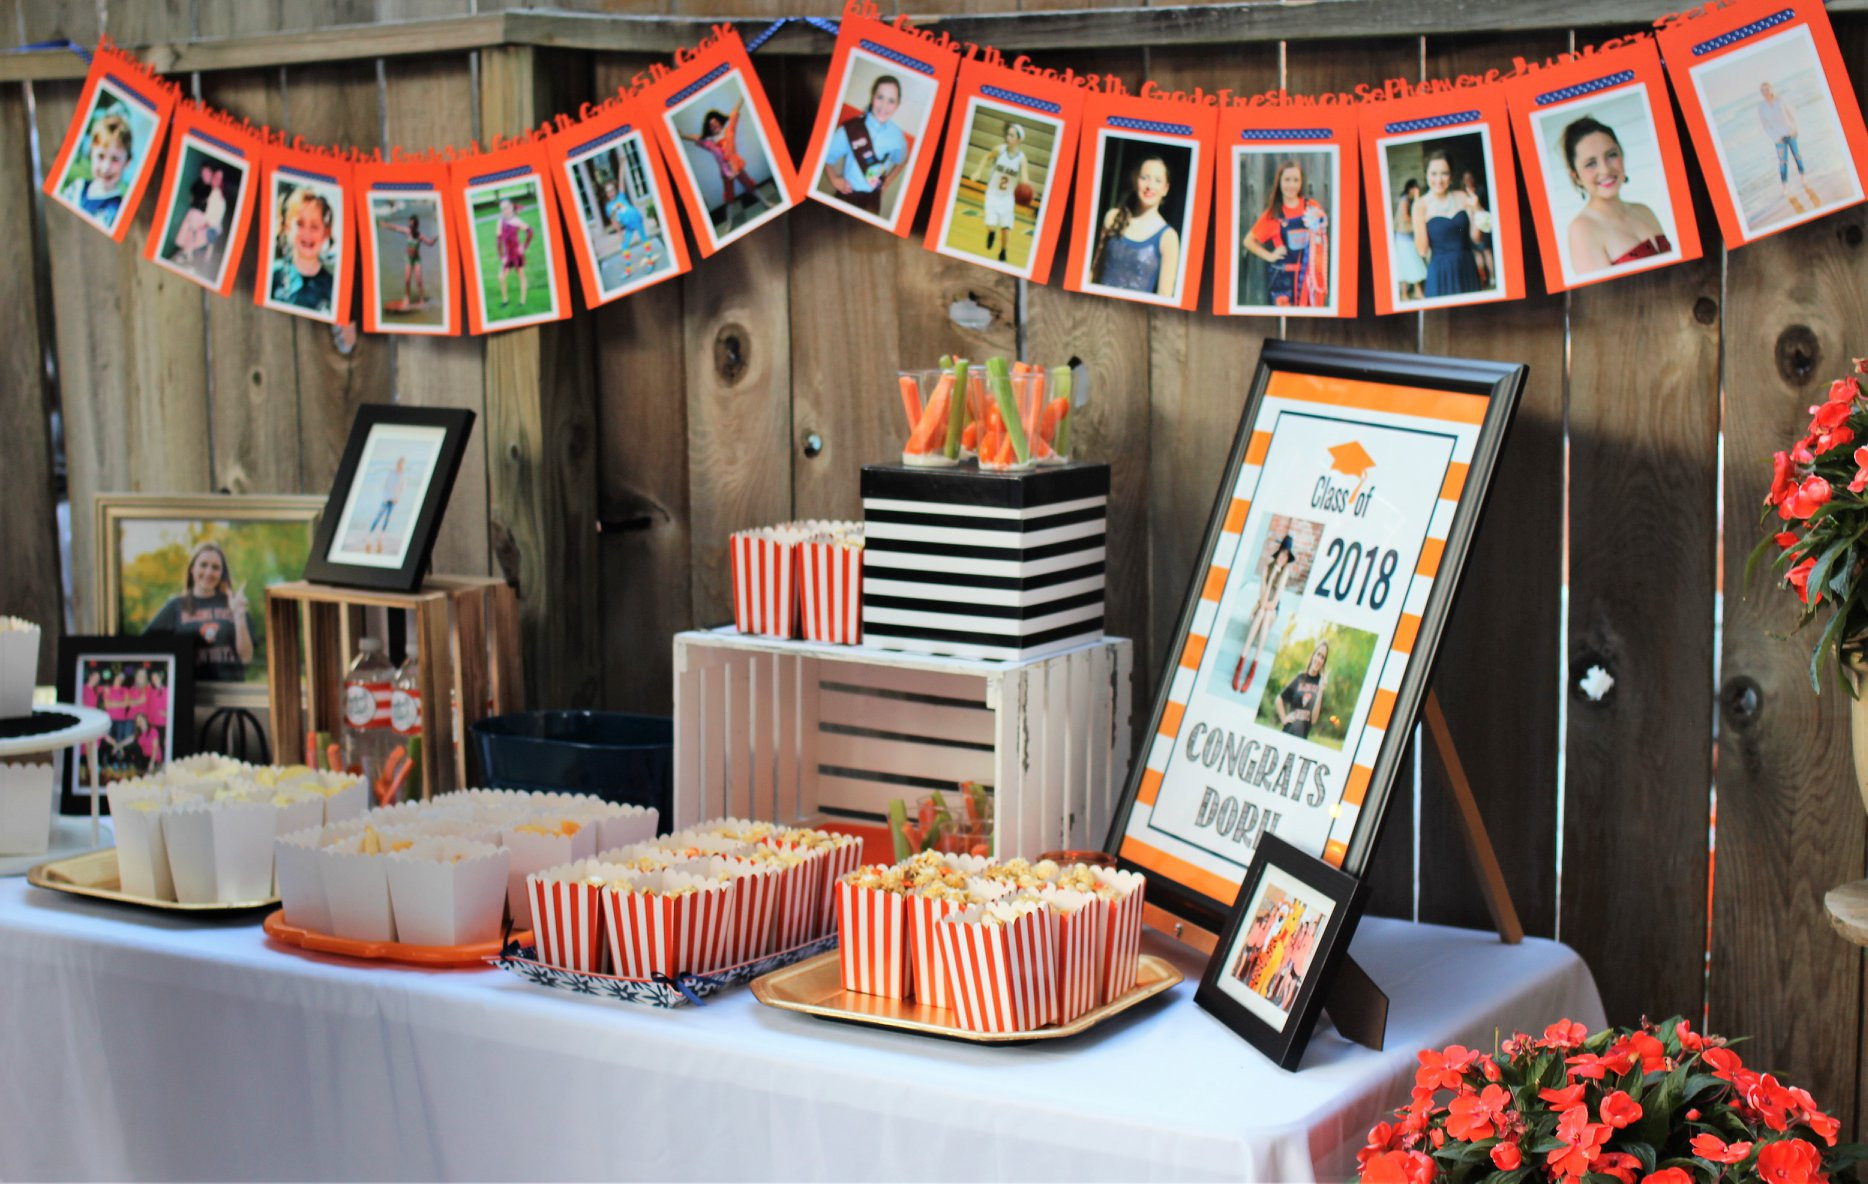 High School Graduation Party Ideas  Graduation Party Ideas How to Celebrate Your Senior s Big Day